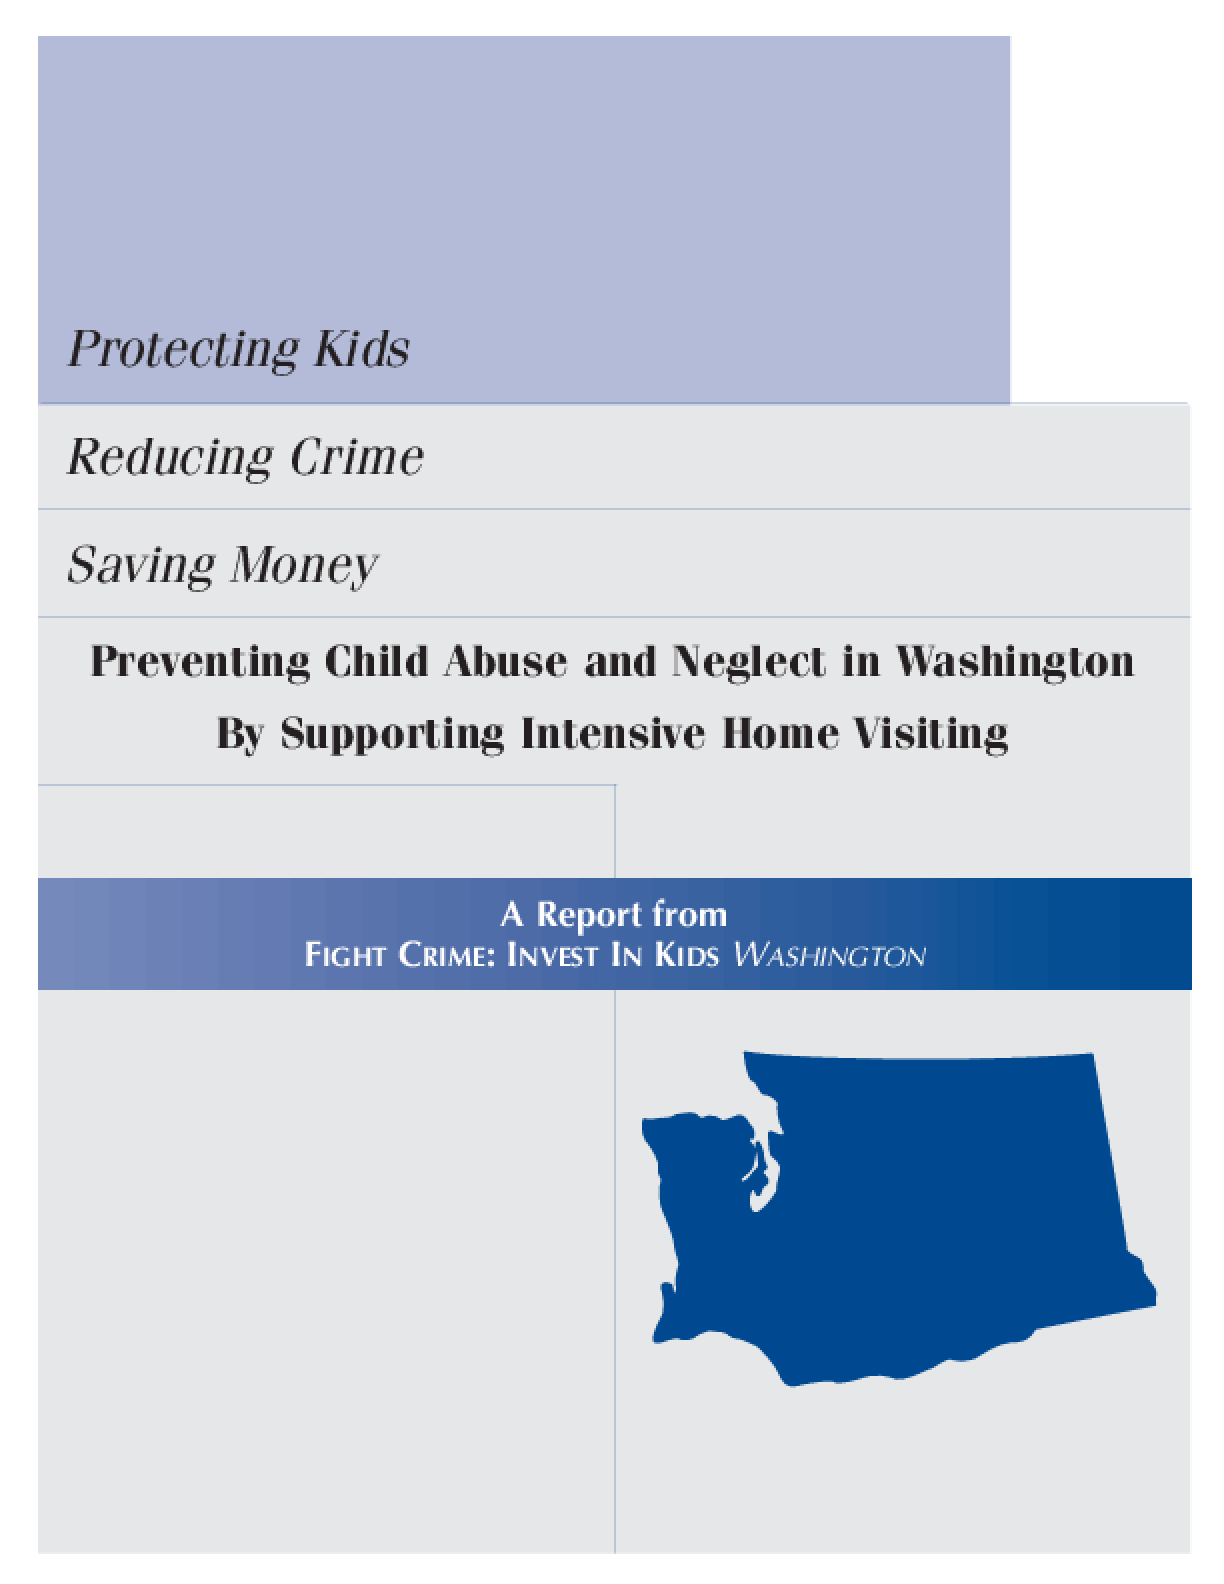 Protecting Kids, Reducing Crime, Saving Money: Preventing Child Abuse and Neglect in Washington by Supporting Intensive Home Visiting.